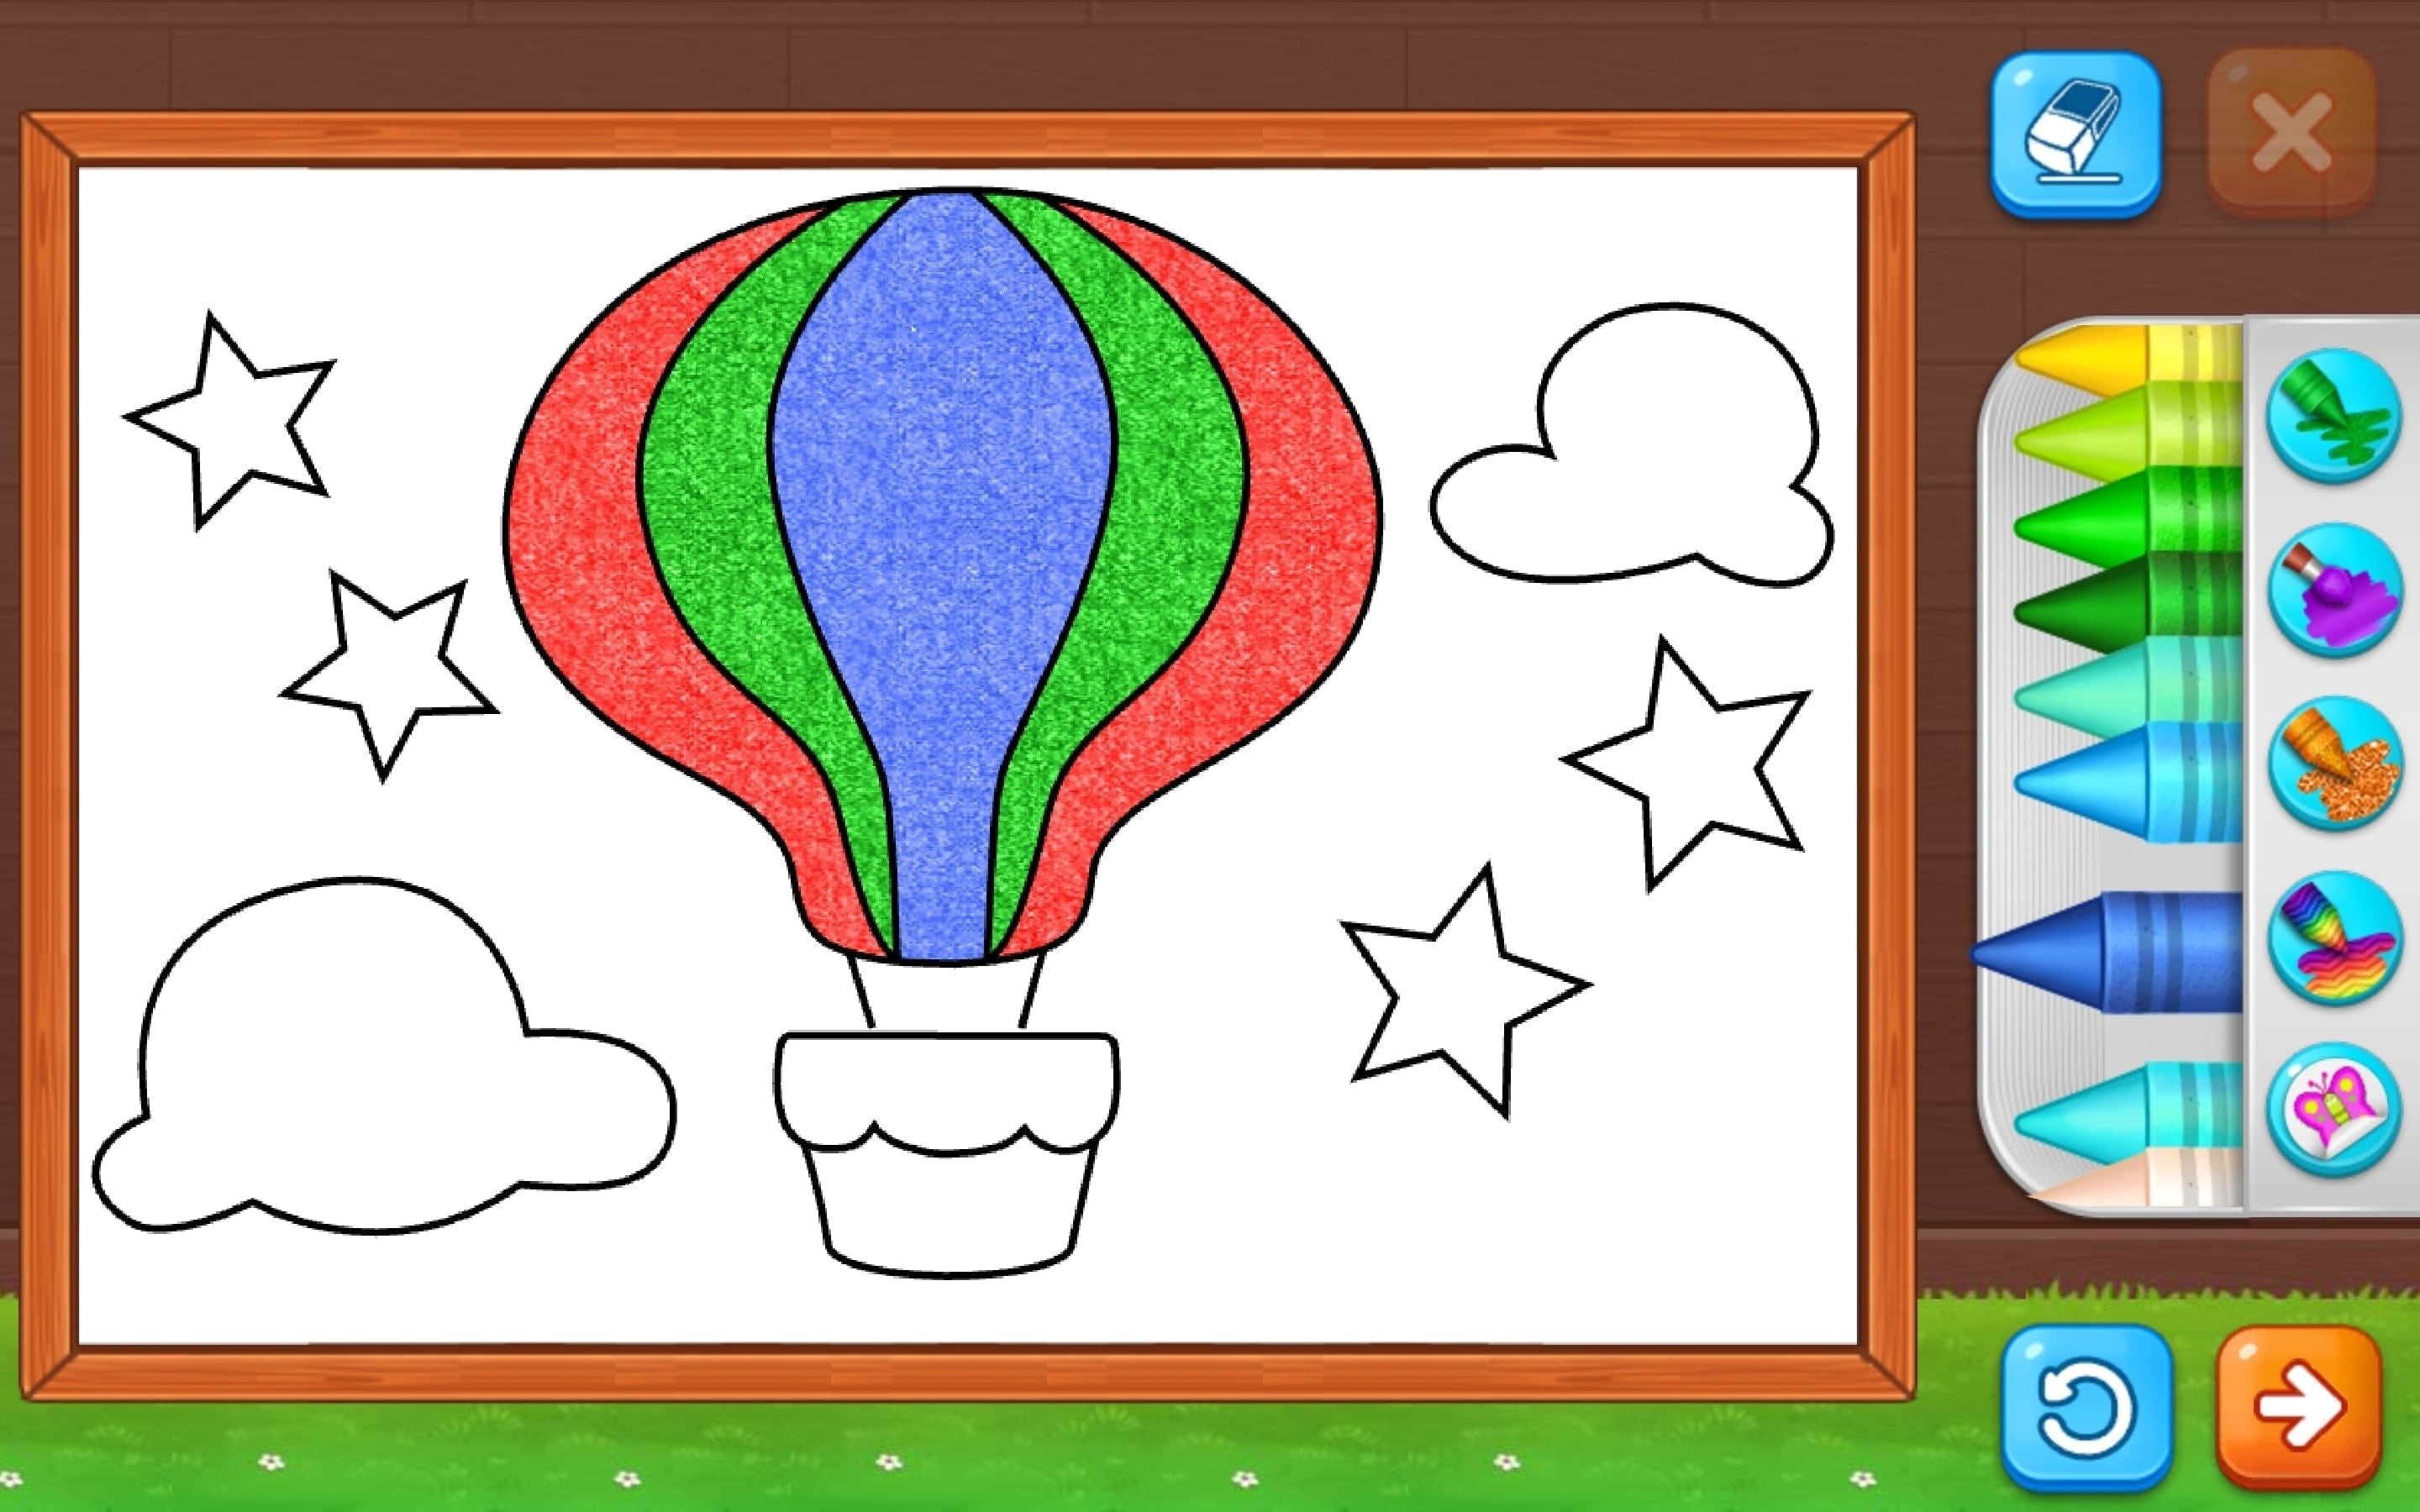 Coloring Games Painting Glow for Kids on Mac